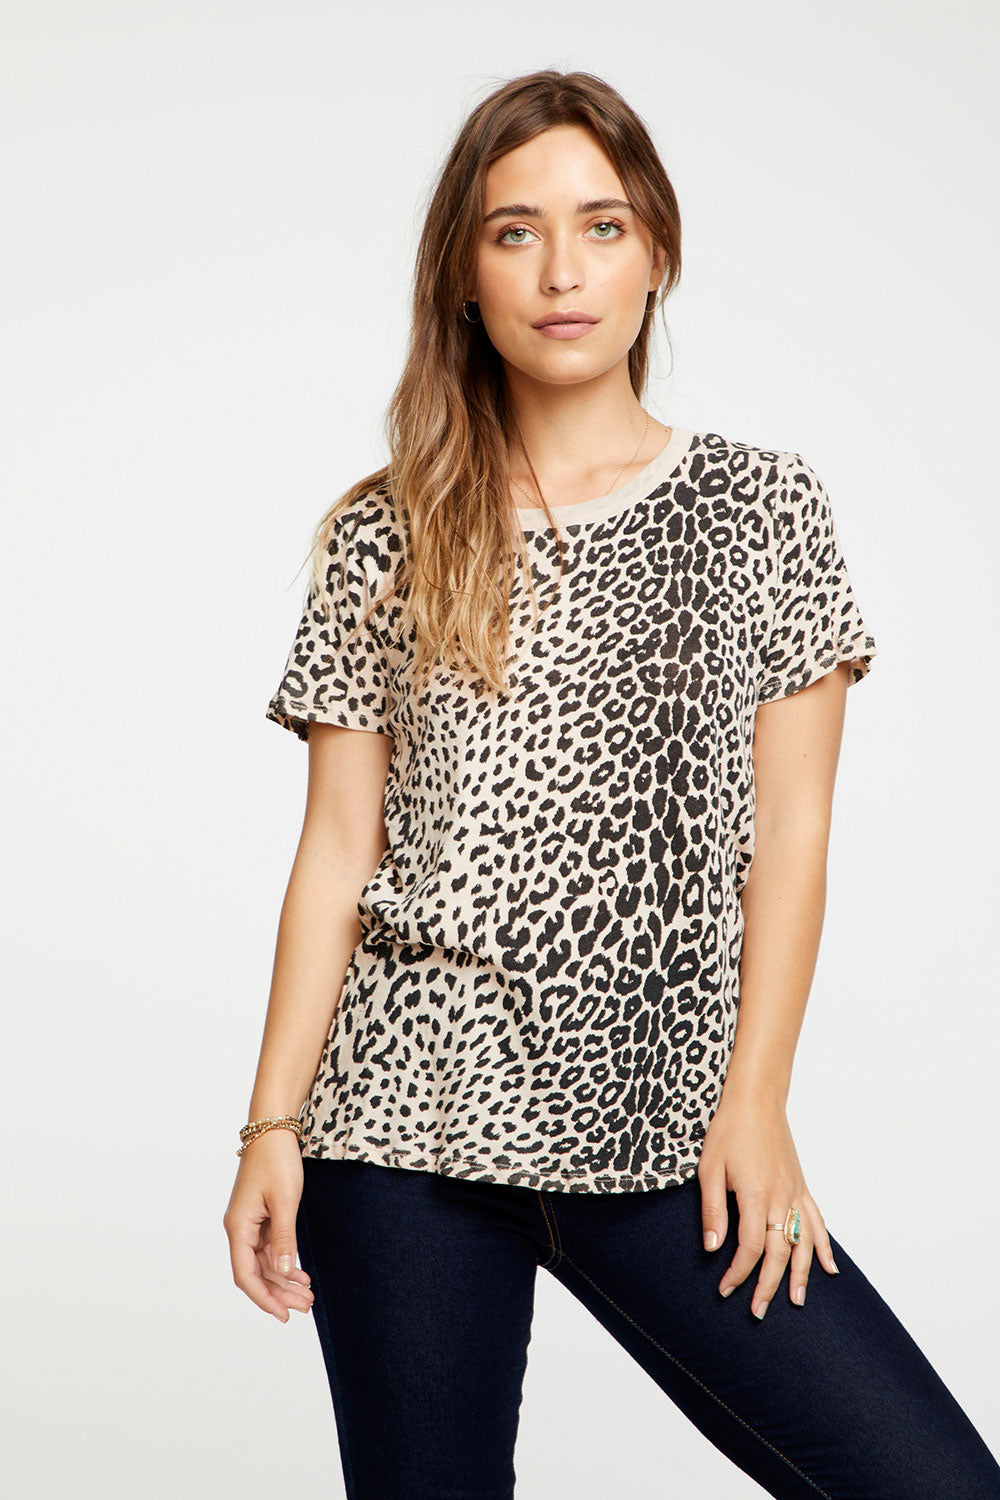 Animal Print Tee, WOMENS, chaserbrand.com,chaser clothing,chaser apparel,chaser los angeles